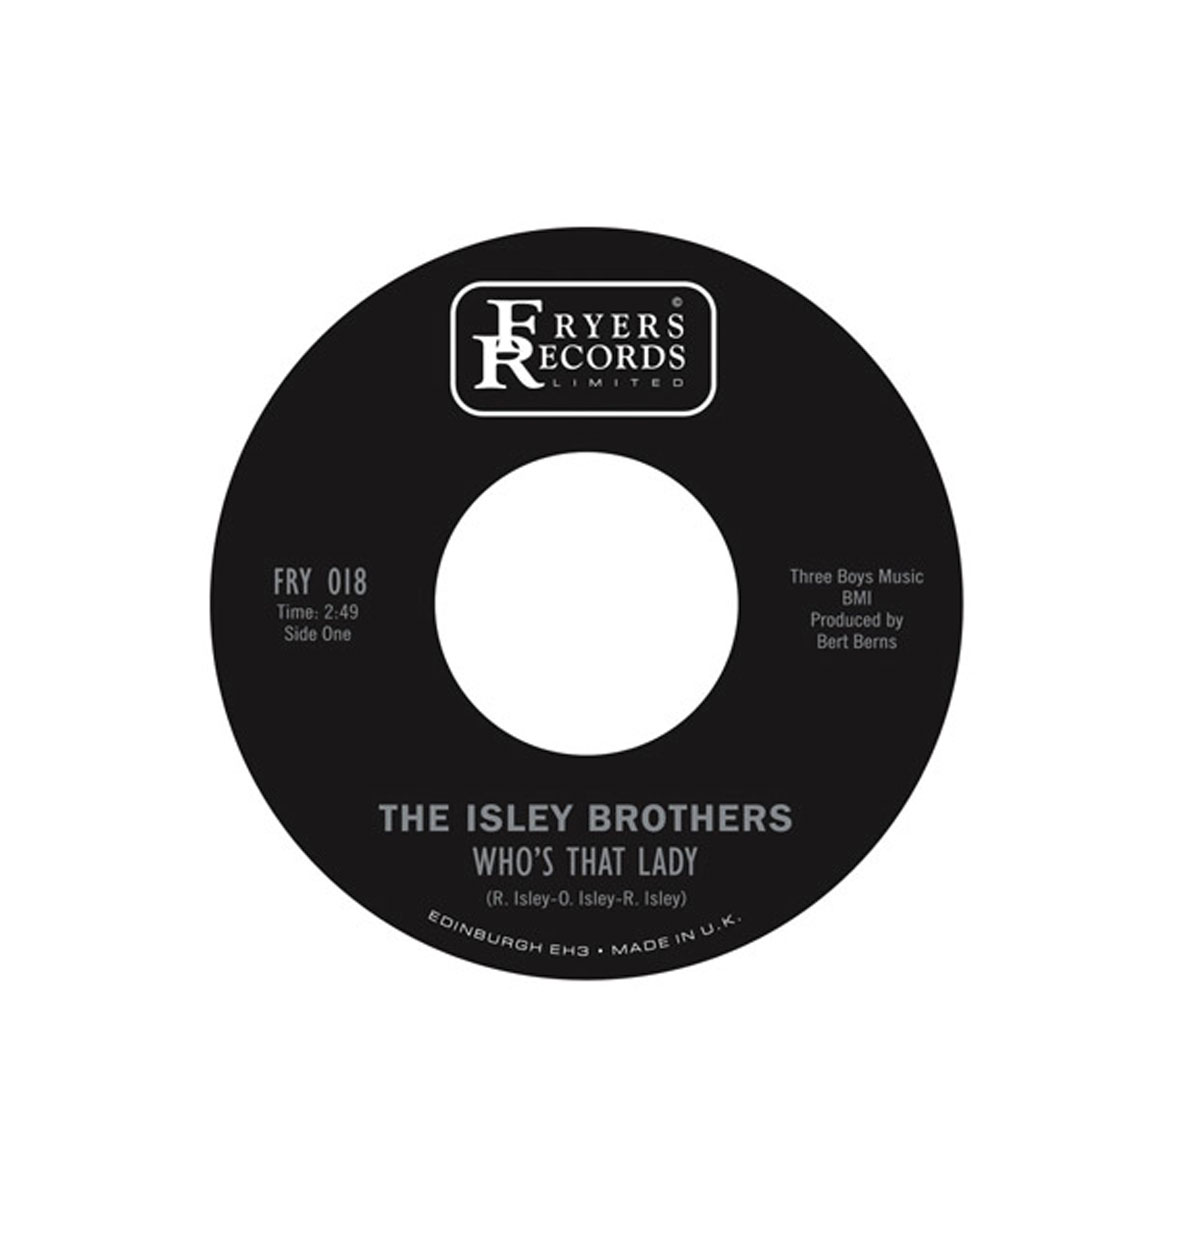 The Isley Brothers - Who's That Lady - St. Louis Blues